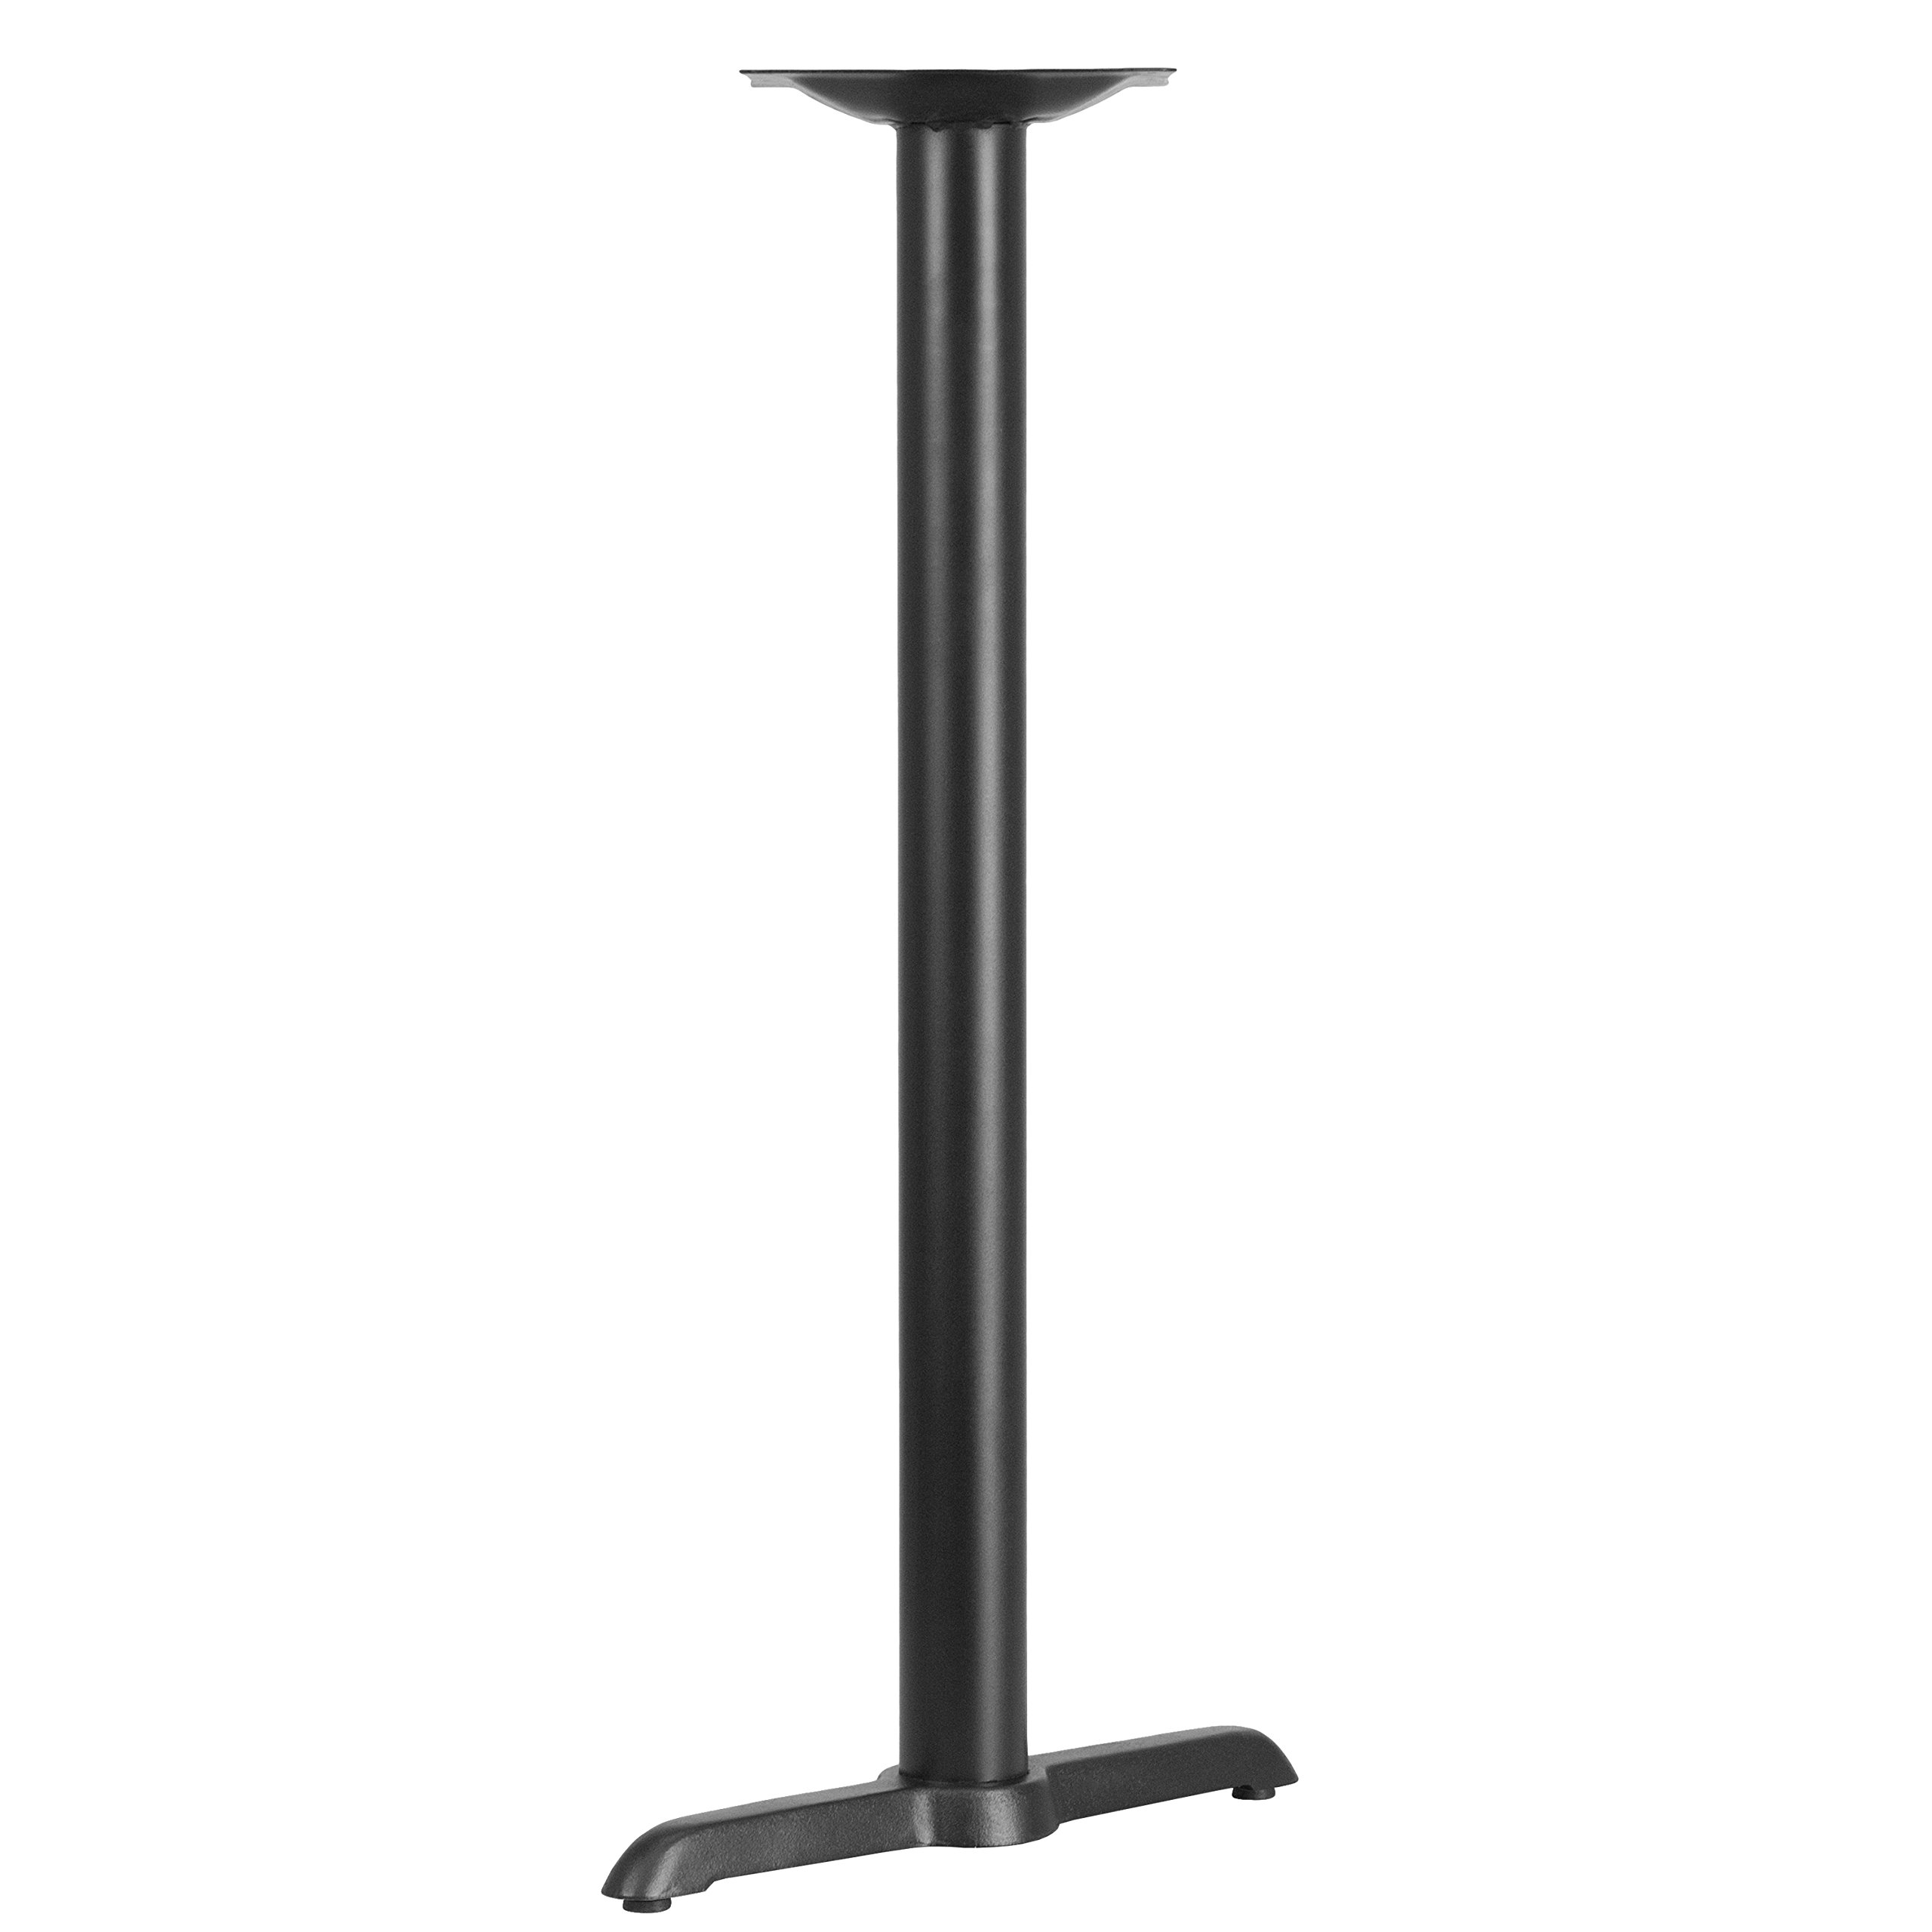 Flash Furniture 5'' x 22'' Restaurant Table T-Base with 3'' Dia. Bar Height Column by Flash Furniture